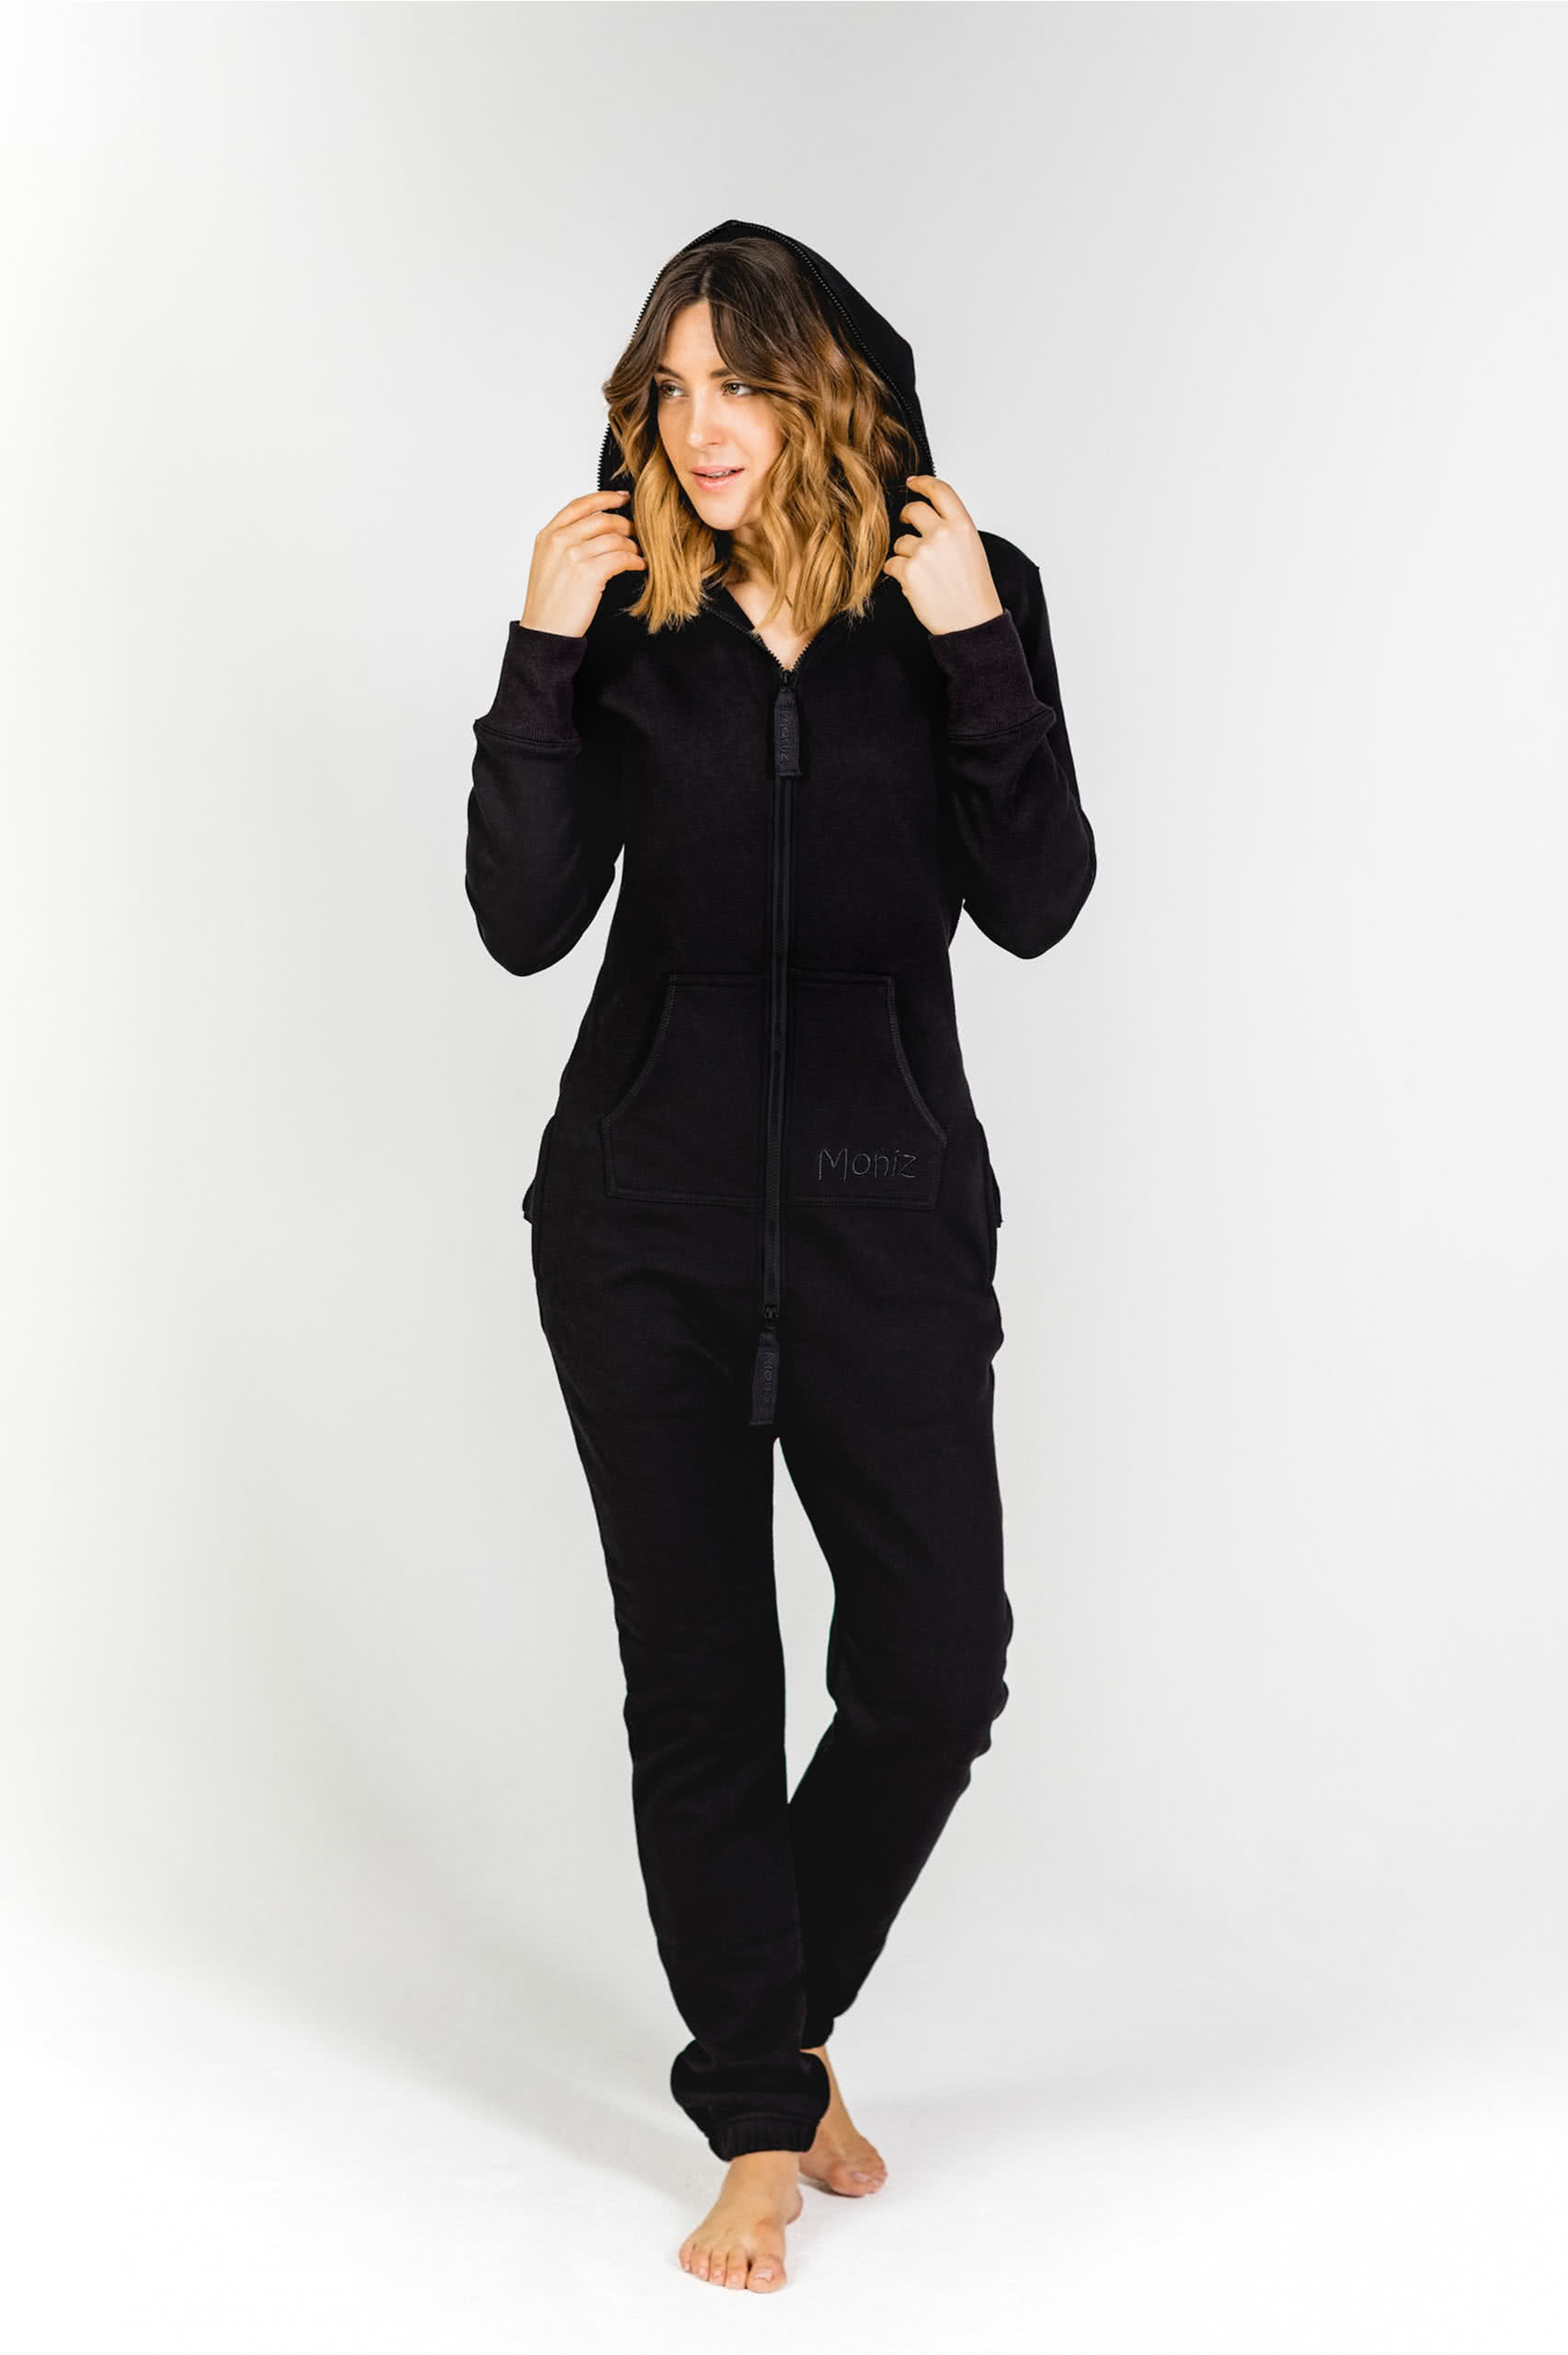 Moniz Damen Jumpsuit Schwarz - Vulcano Black